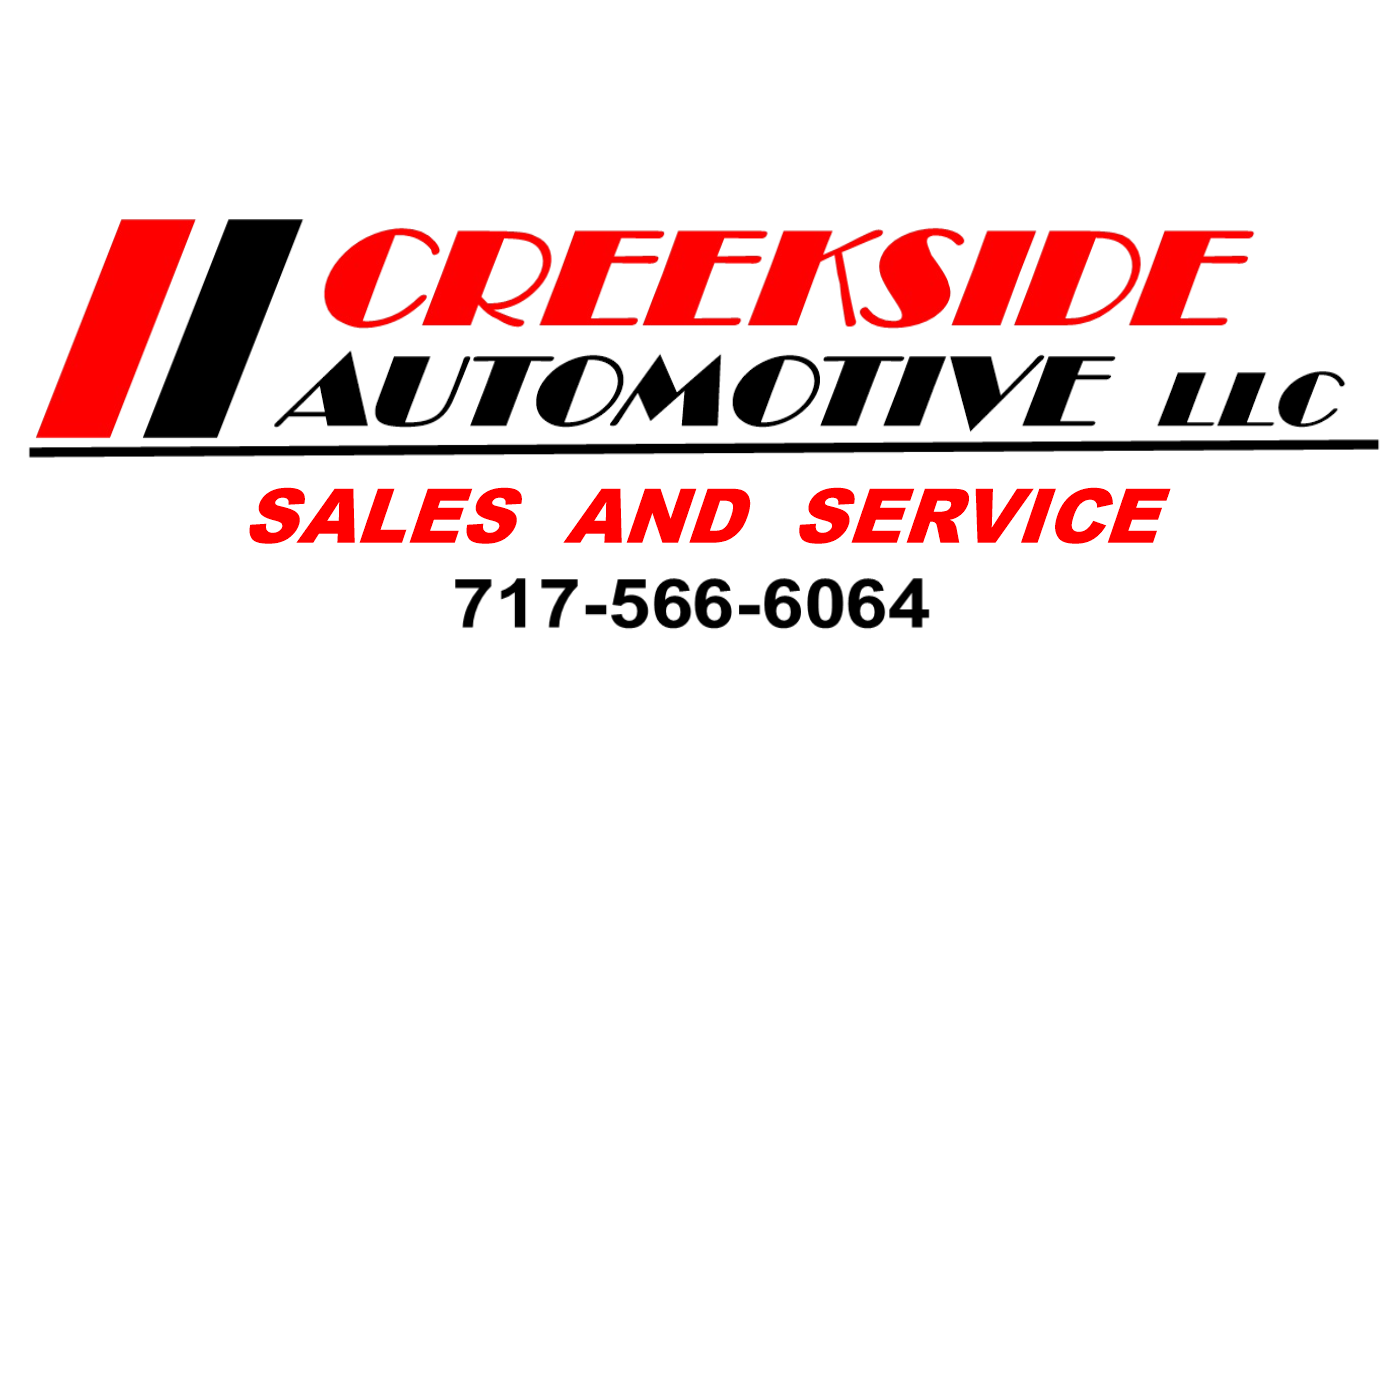 Creekside Automotive LLC